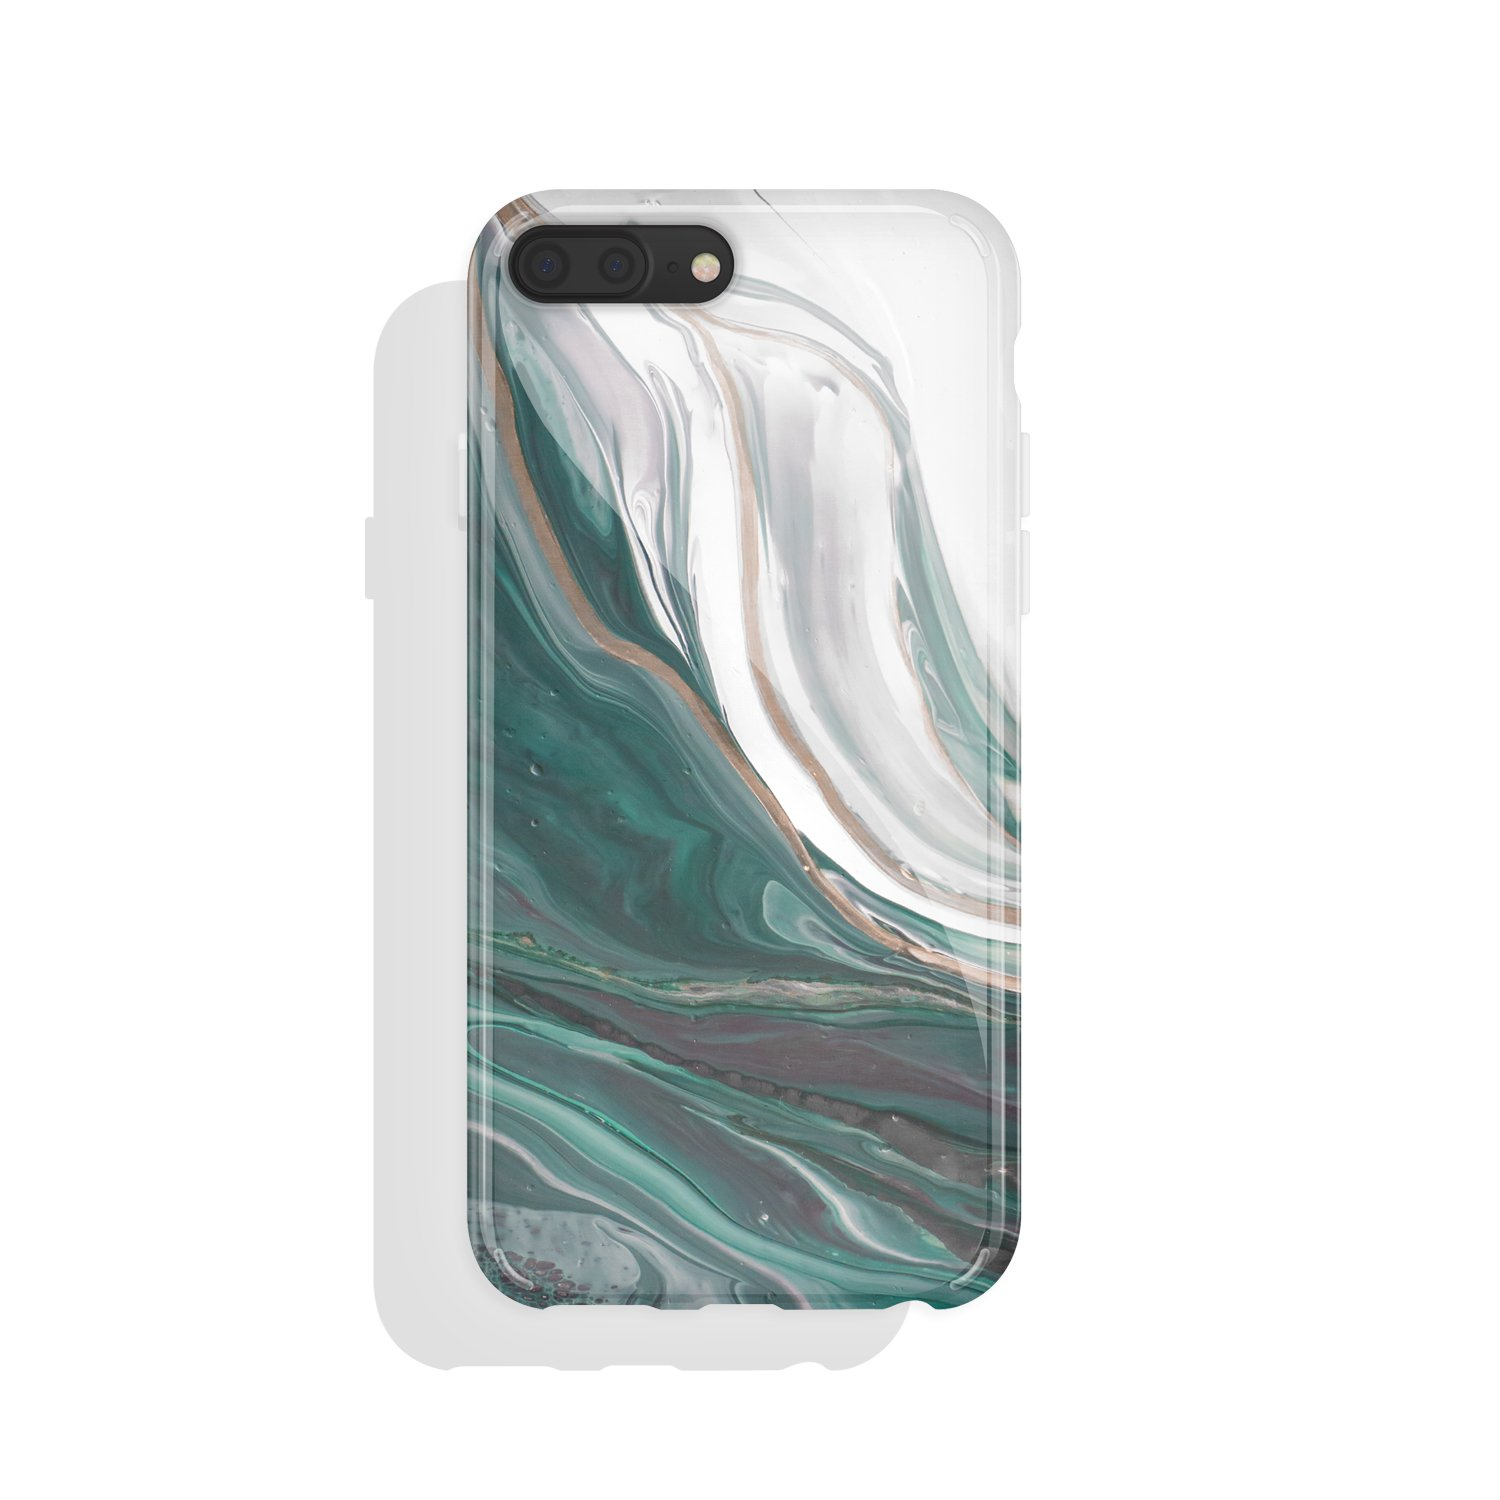 iPhone 8 plus & iPhone 7 plus Case Agate, Akna Charming Series High Impact Silicon Cover with HD Graphics for iPhone 8 plus & iPhone 7 plus (101340-U.S)